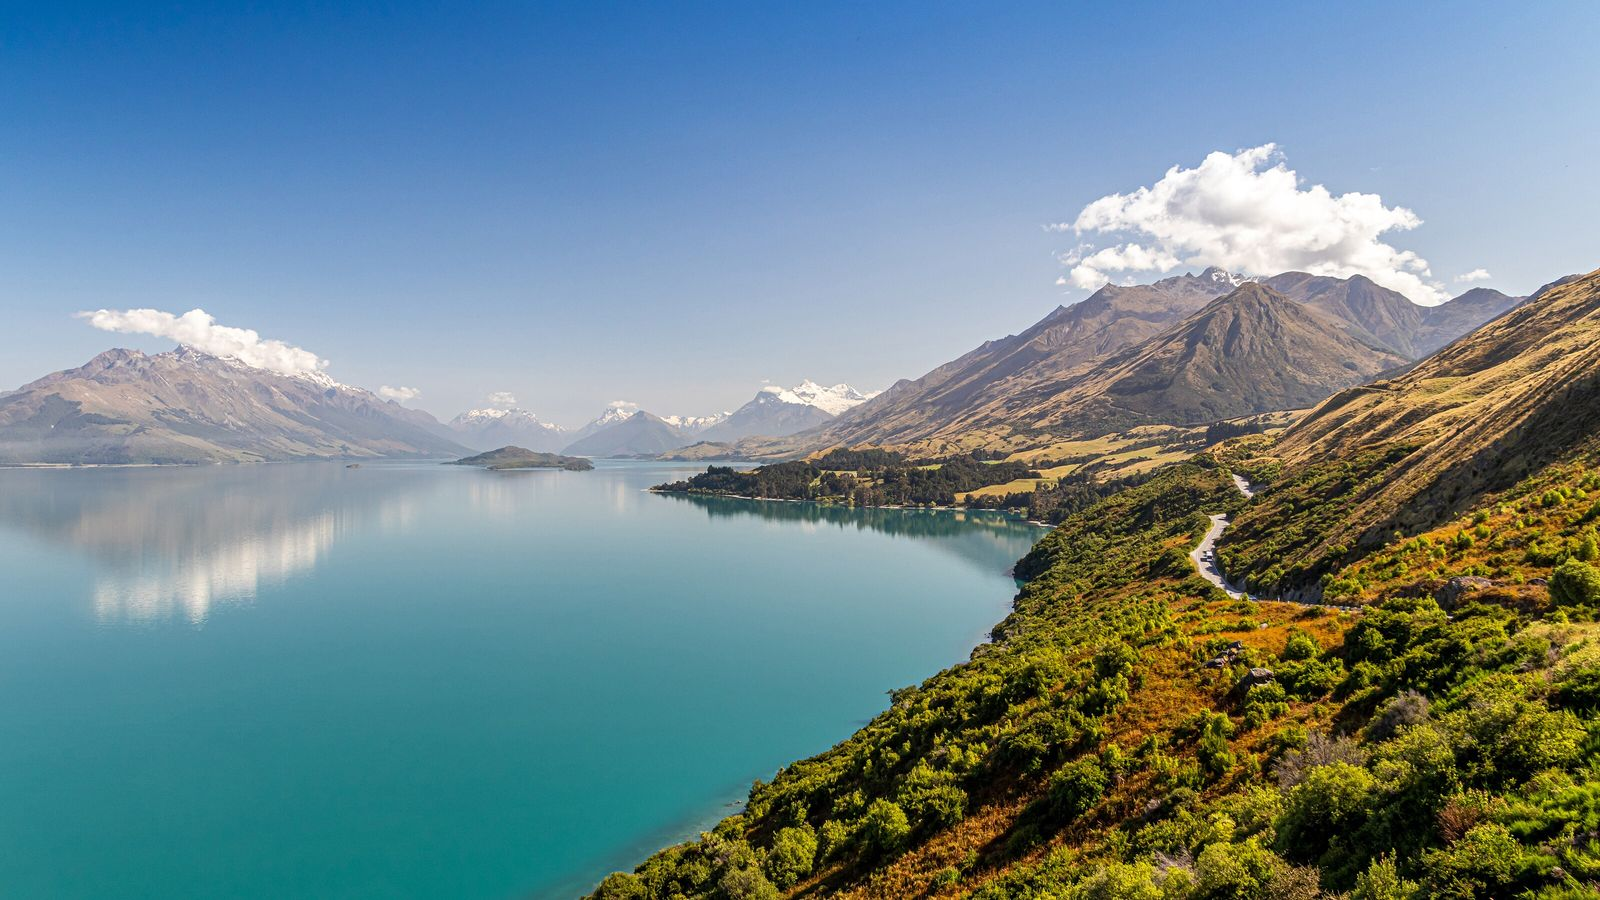 Elevated view over the snowcapped mountains and water of Lake Wakatipu at Queenstown